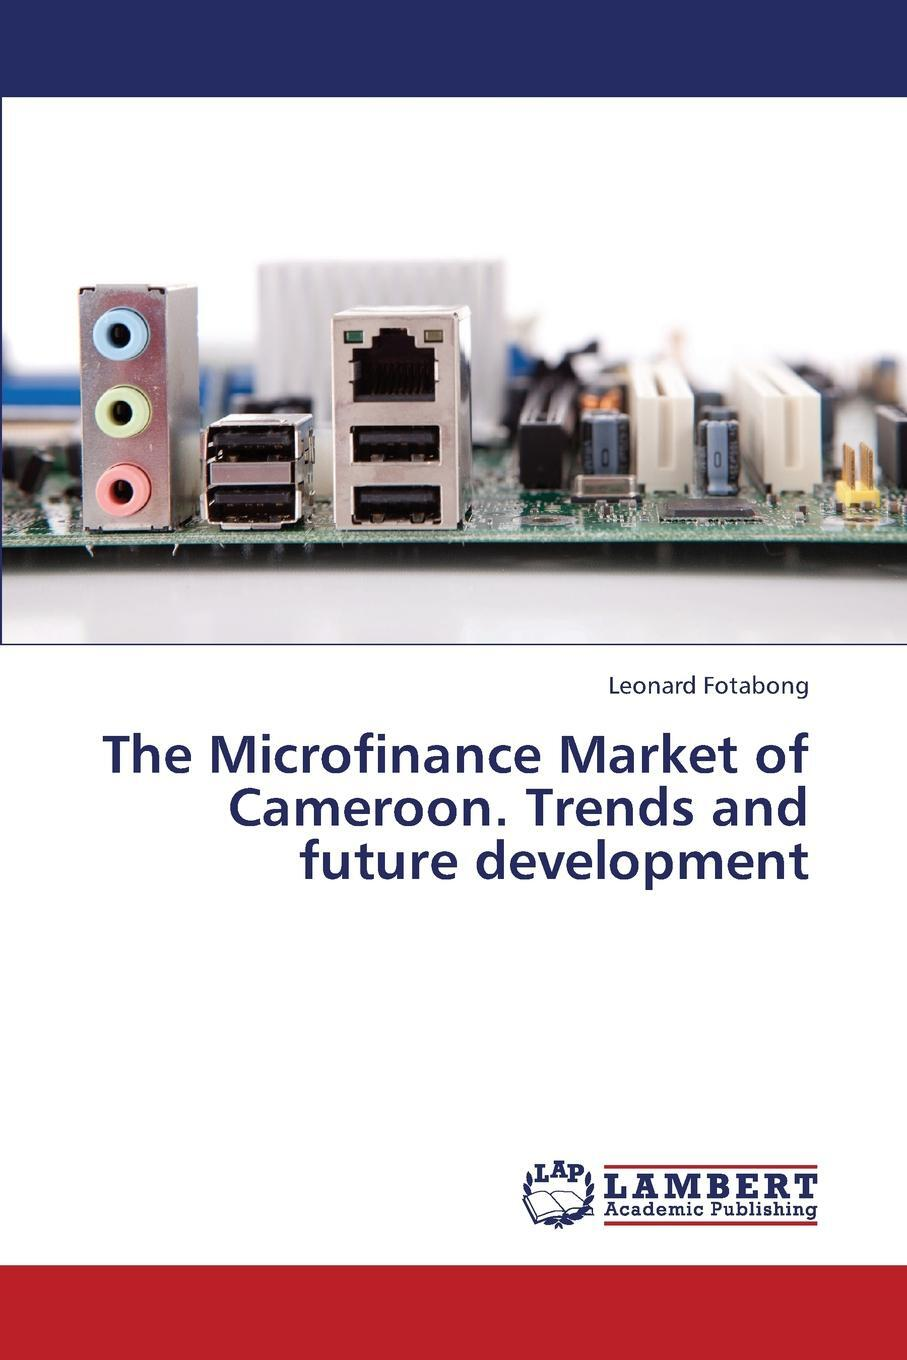 The Microfinance Market of Cameroon. Trends and Future Development